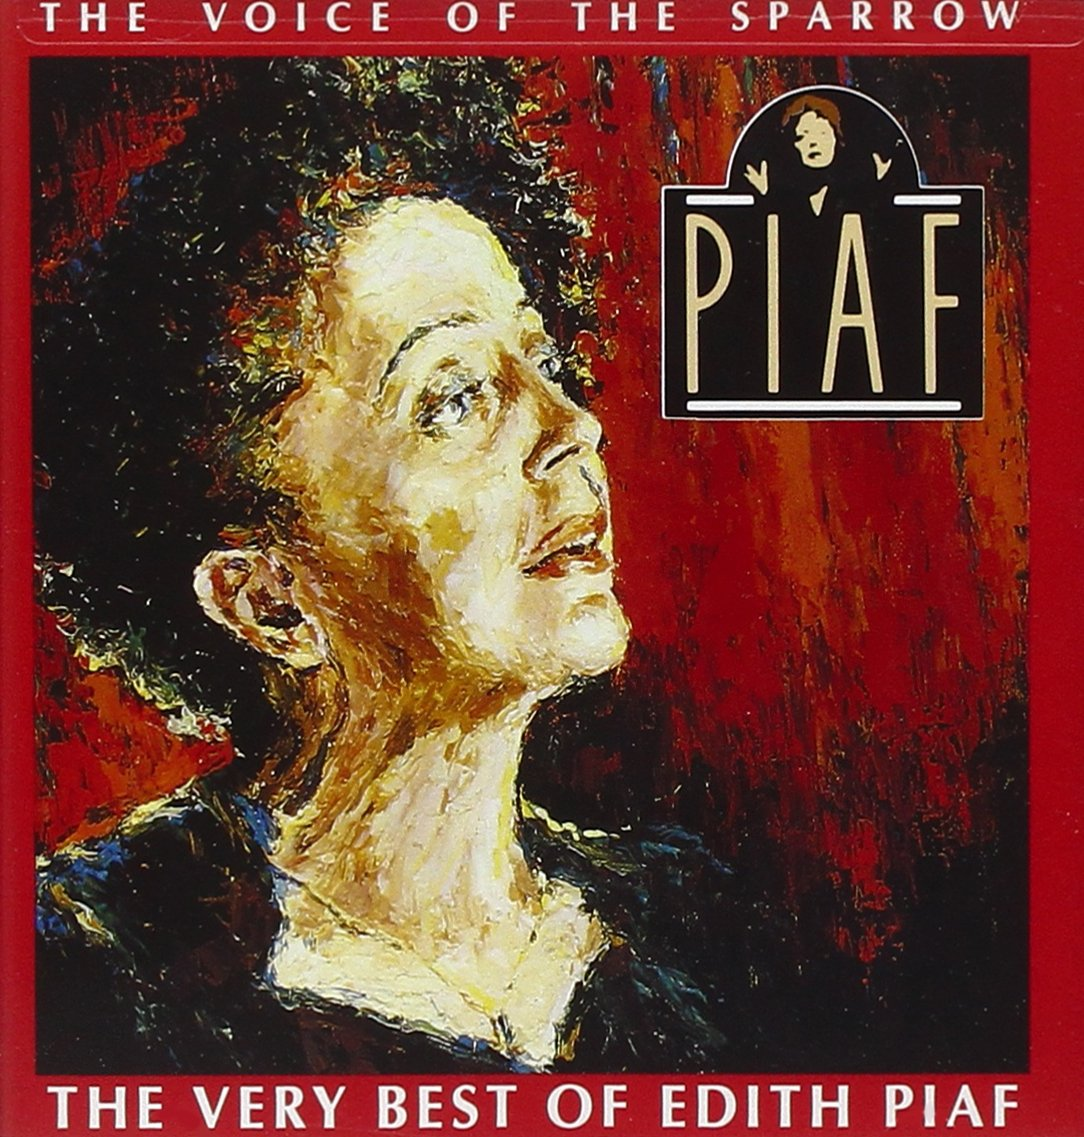 The Voice of the Sparrow: The Very Best of Edith Piaf by Capitol